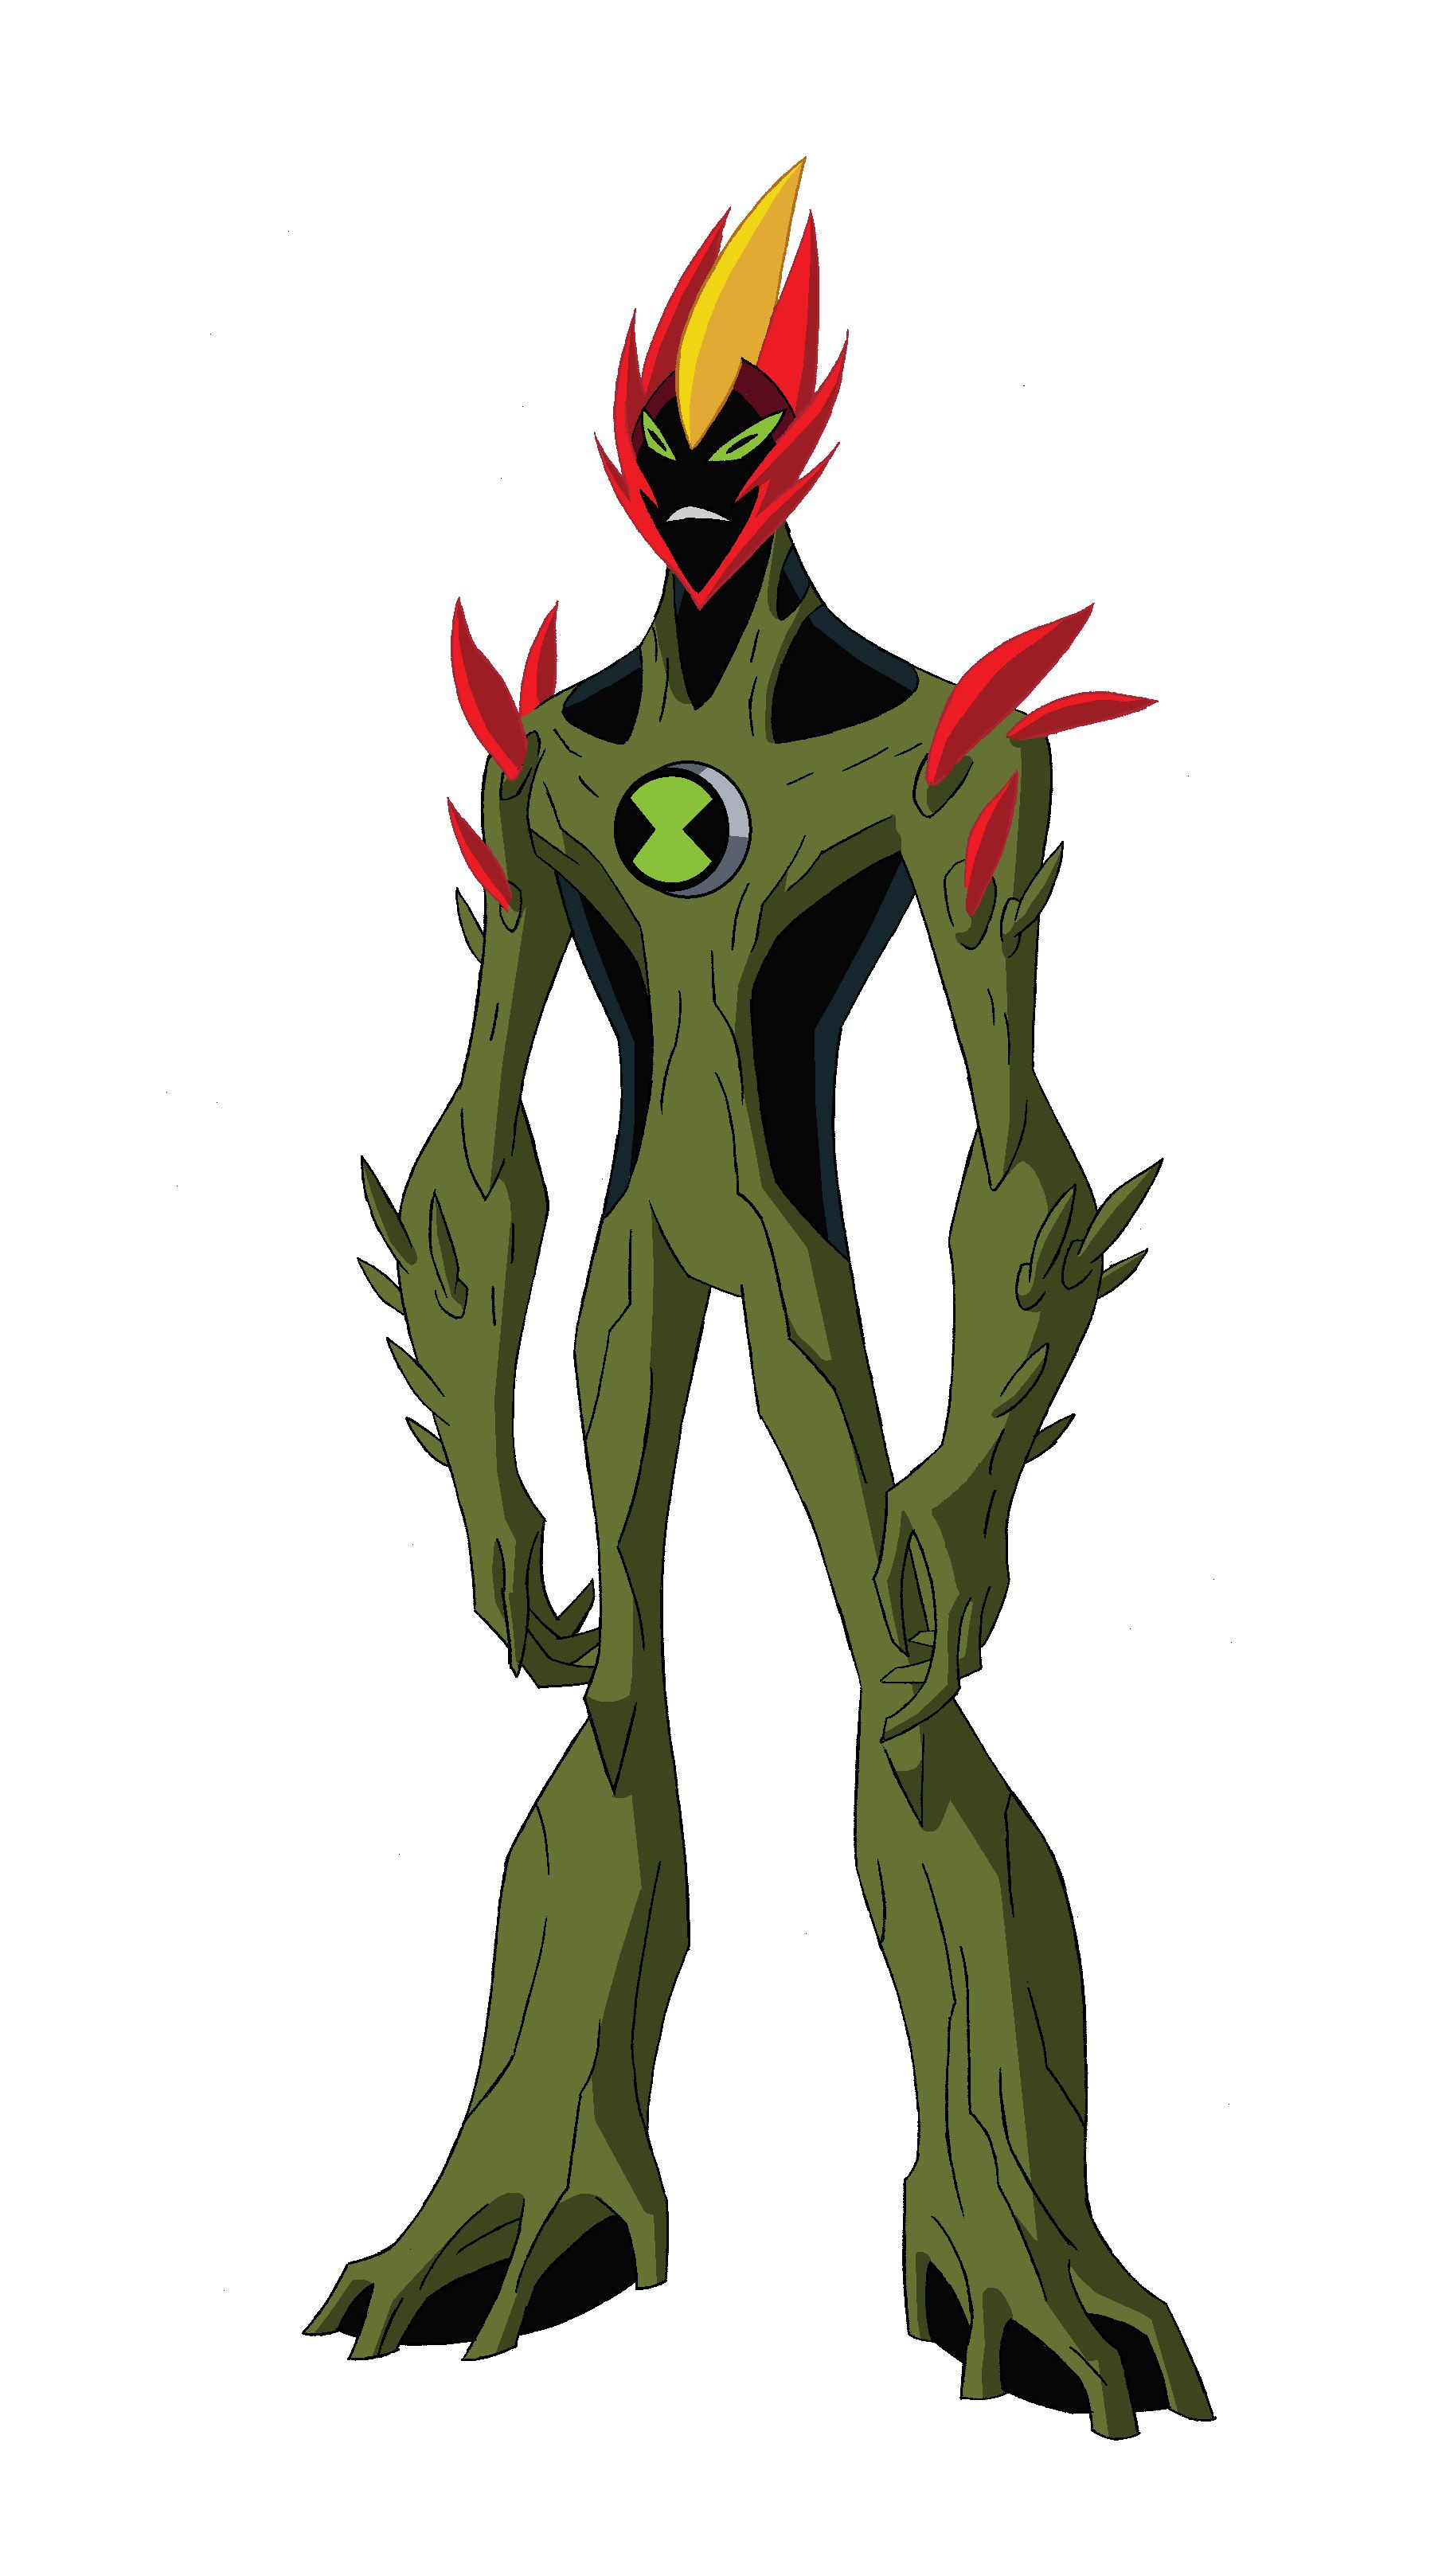 Ben 10 Alien Force Out Of This World Fun Ben 10 Alien Force Ben 10 Ben 10 Ultimate Alien